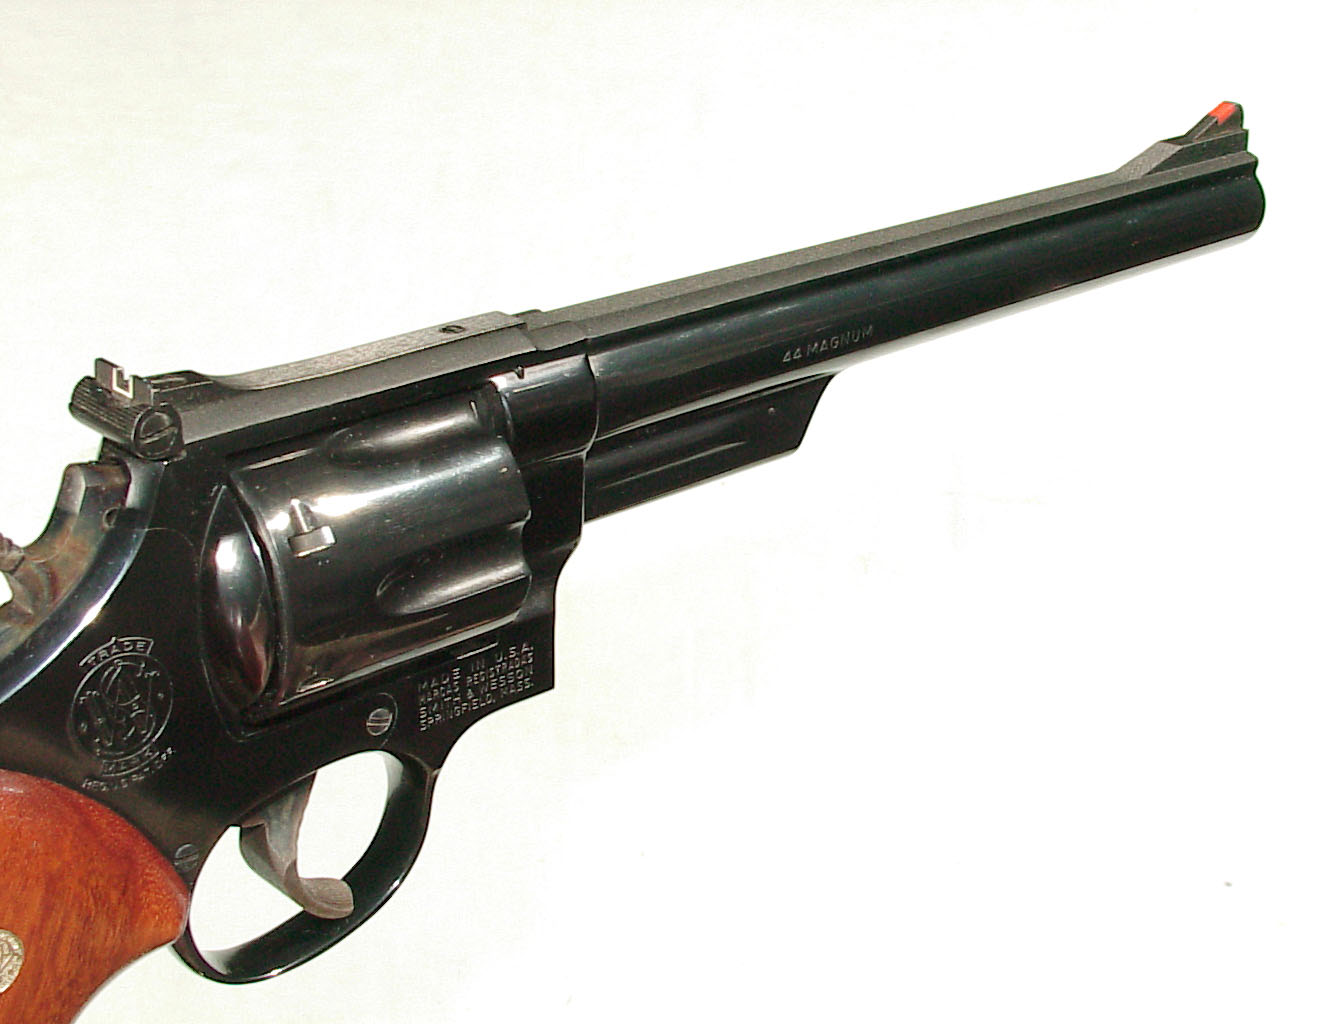 monty whitley inc s w model 29 revolver 44 magnum with factory box. Black Bedroom Furniture Sets. Home Design Ideas